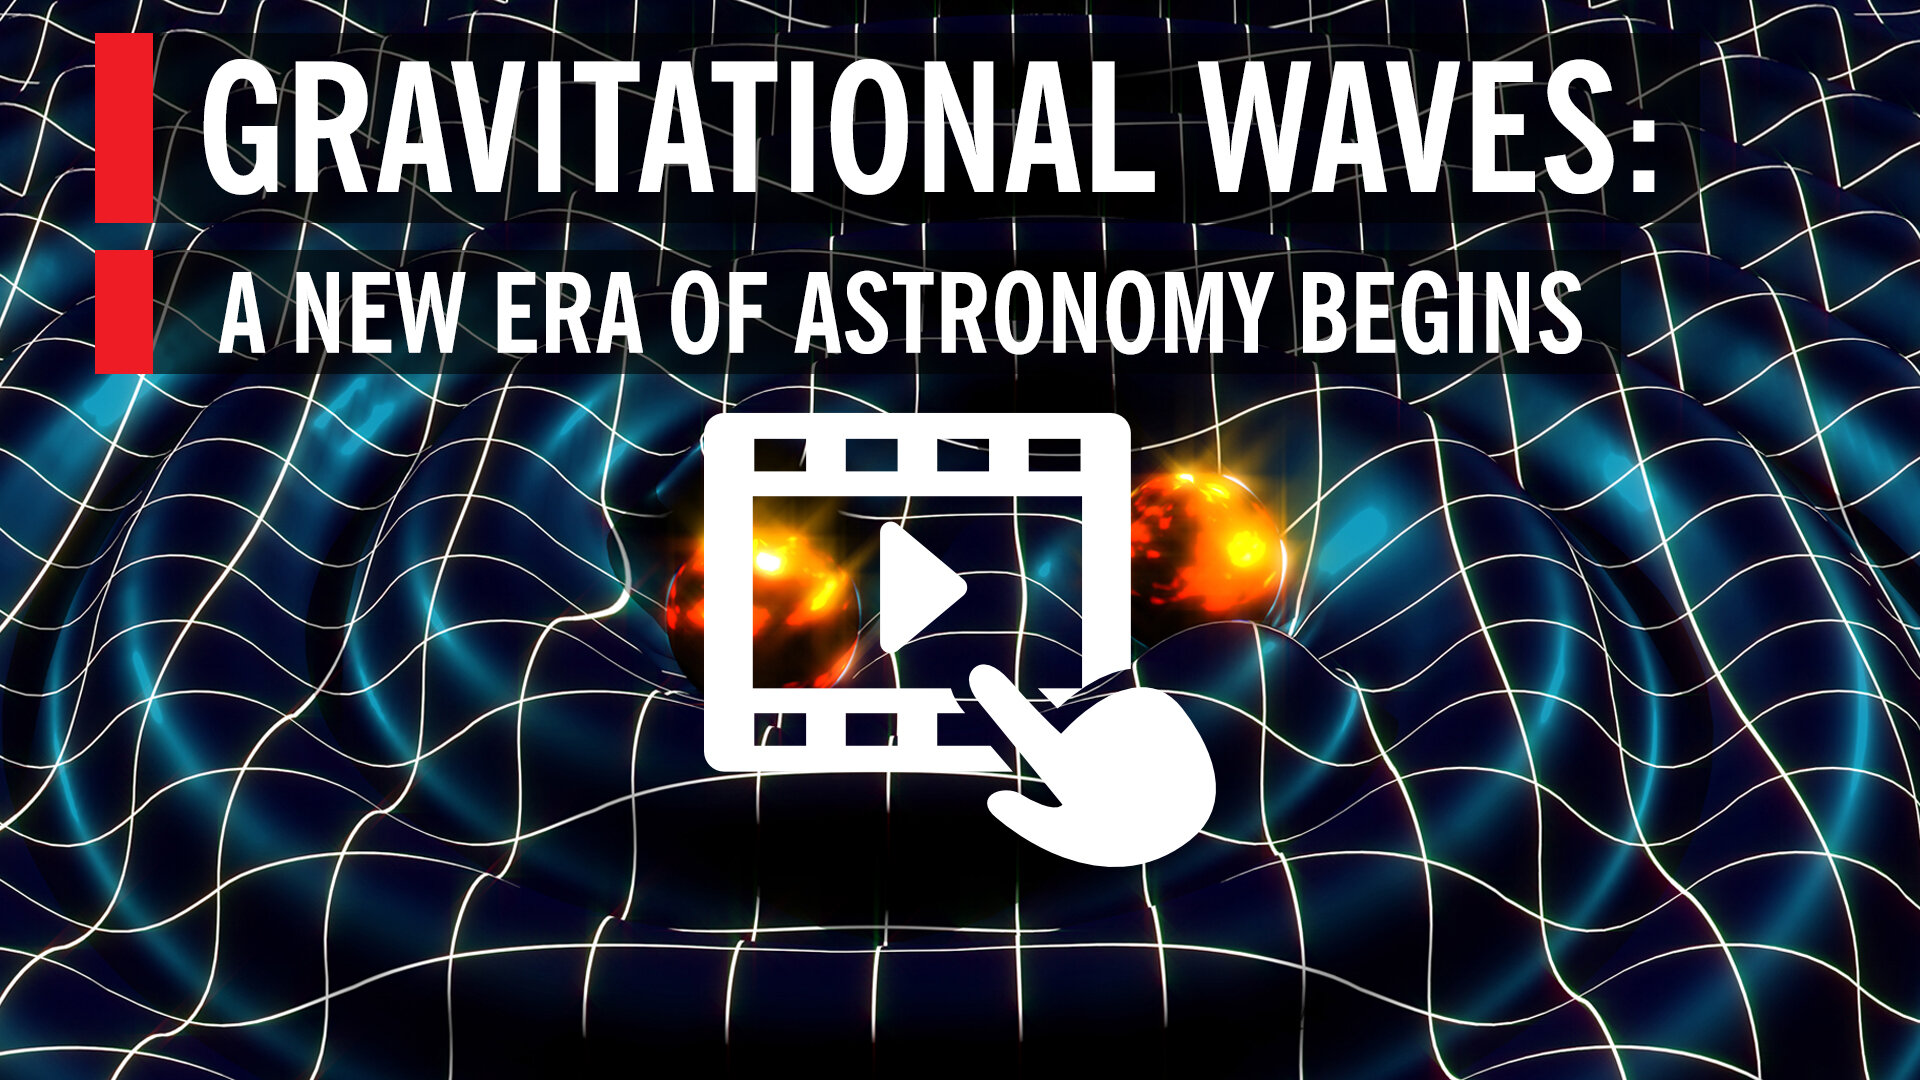 Learn more about LIGO and gravitational waves in space - Watch video